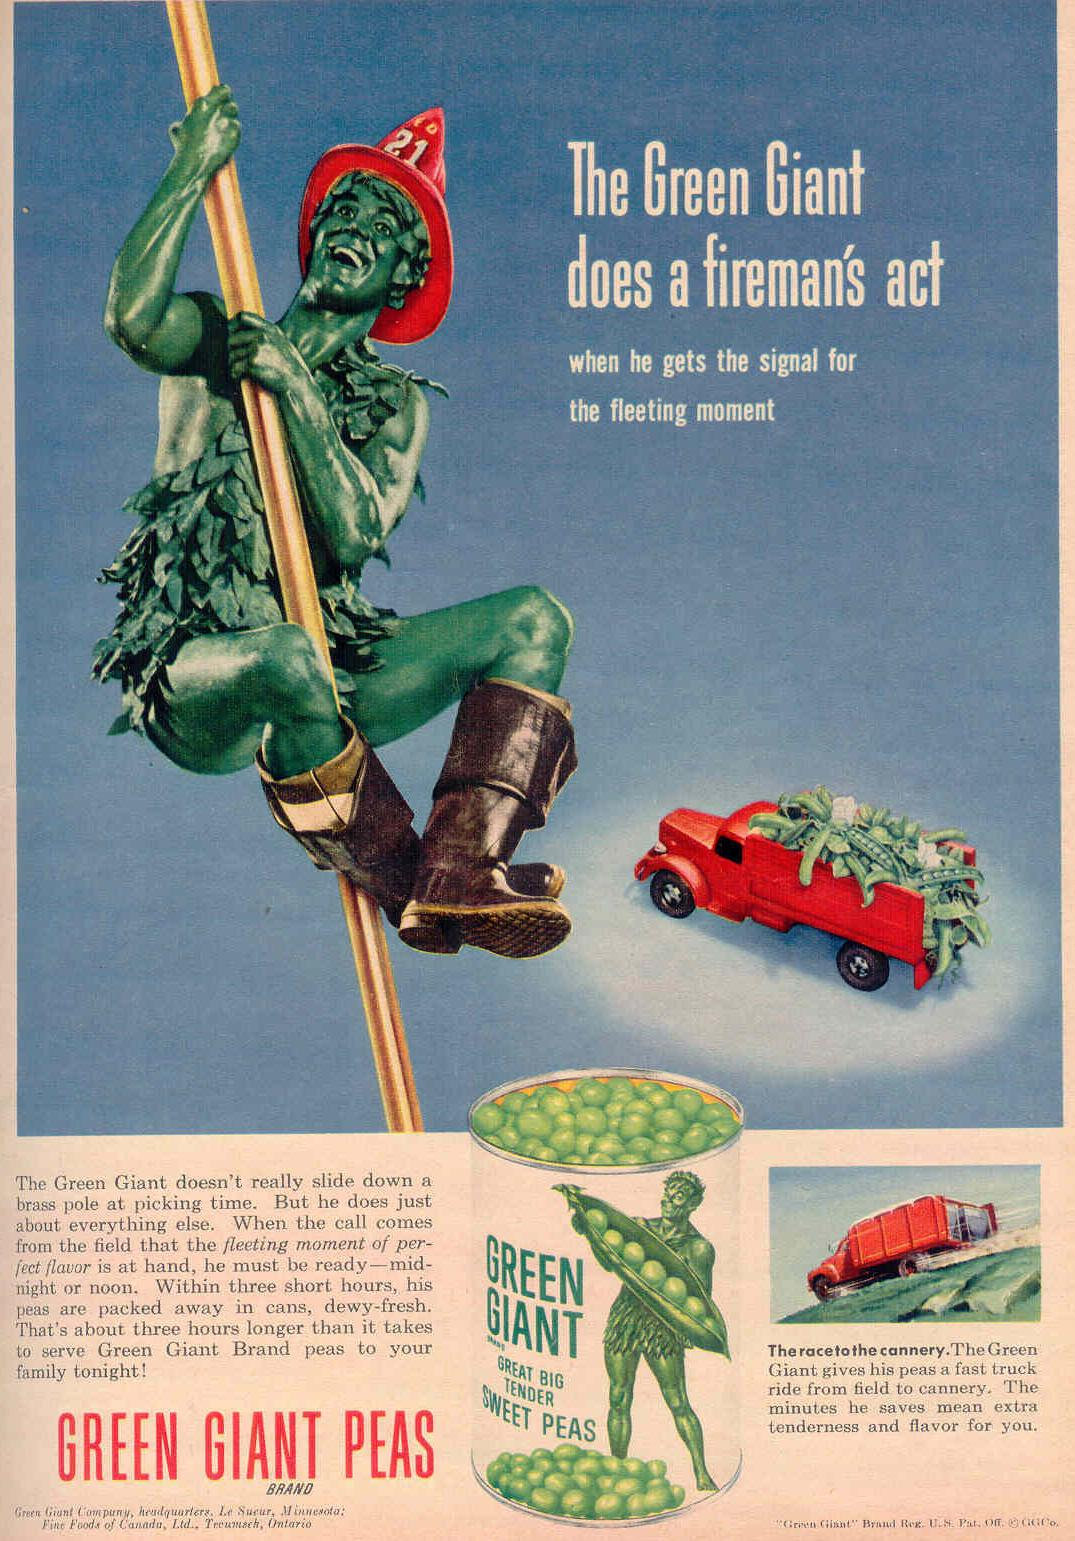 1952 - Green Giant Company - green giant.jpg